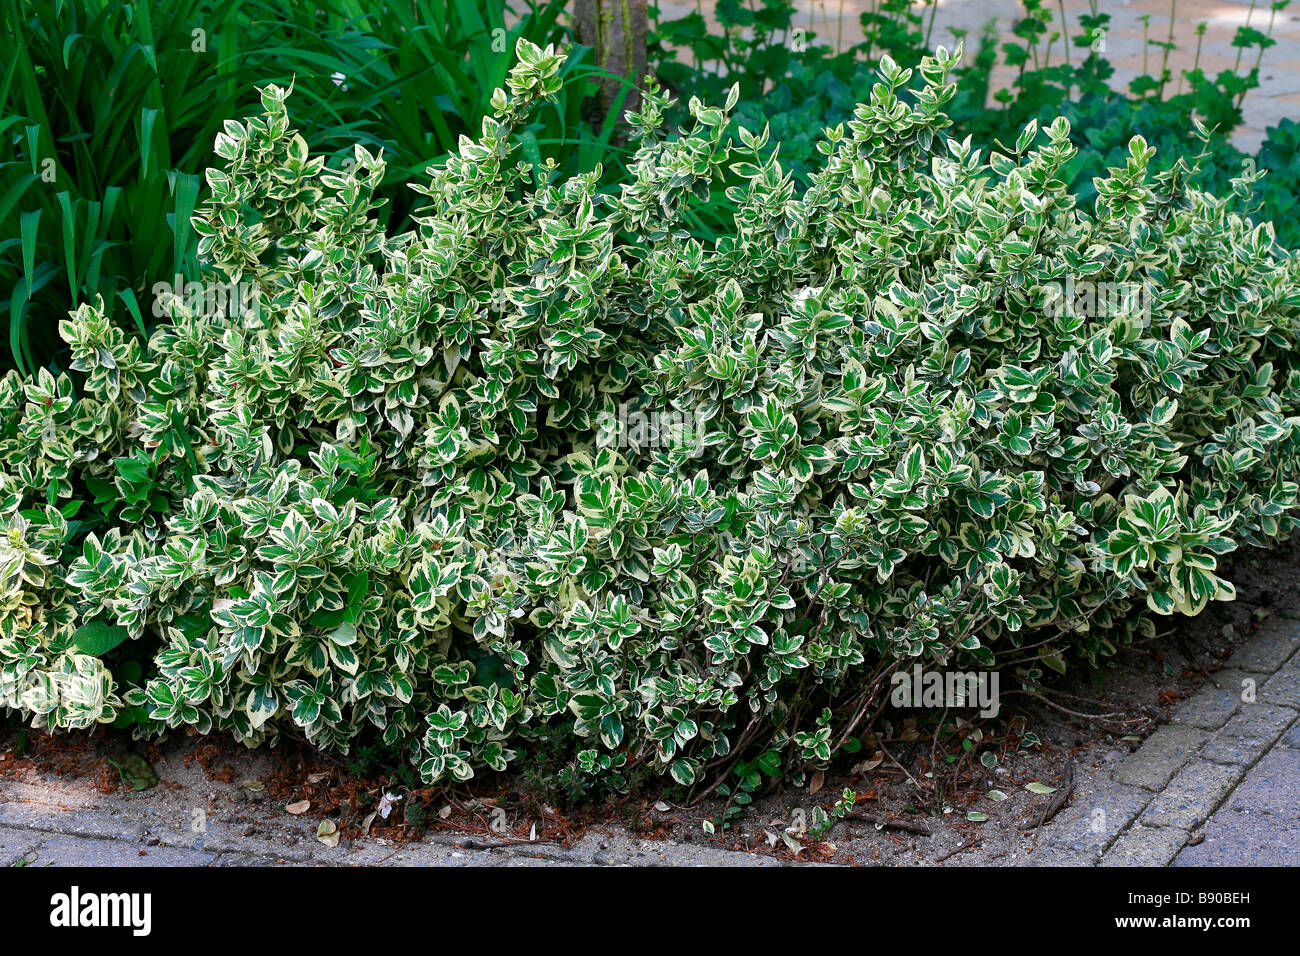 euonymus fortunei emerald gaiety stock photo 22751305 alamy. Black Bedroom Furniture Sets. Home Design Ideas